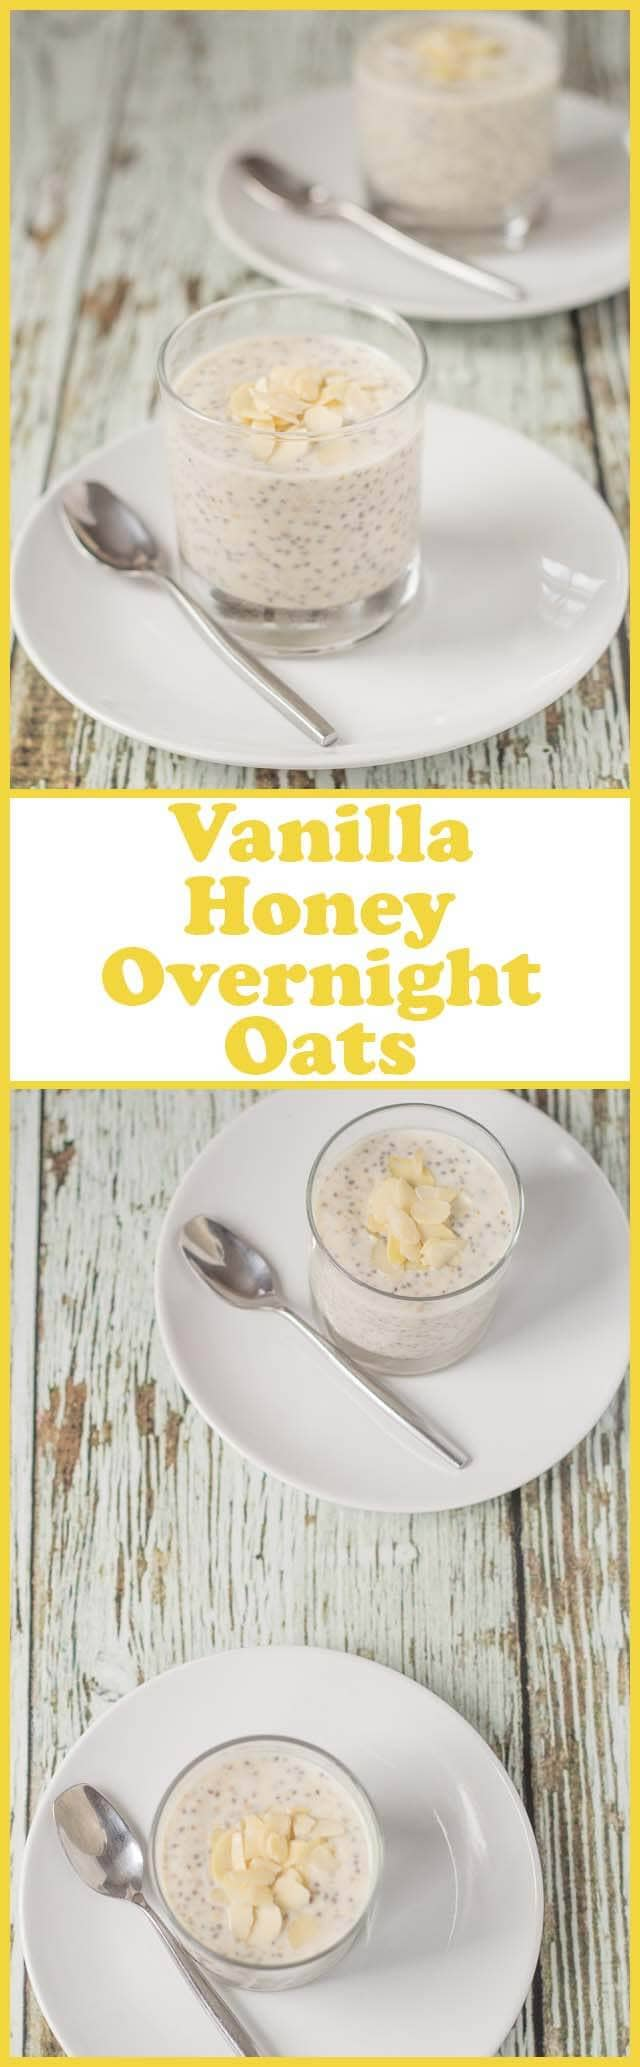 Vanilla honey overnight oats is such a delicious quick healthy breakfast. Top with your choice of nuts, fruit or granola for the perfect start to your day!